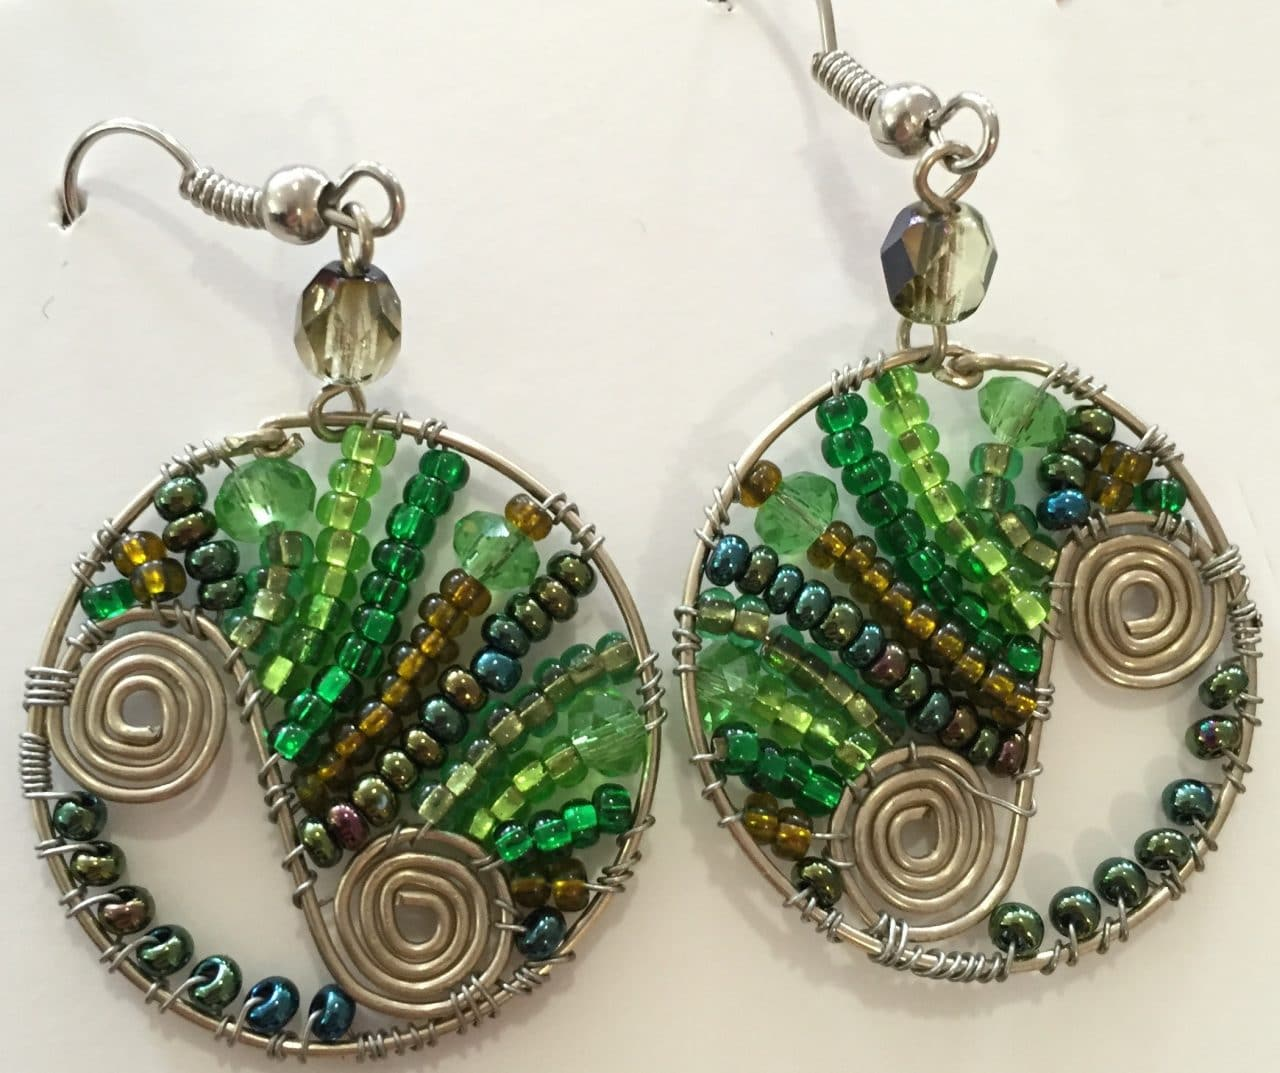 Flowing Spiral Circle Earrings - Greens